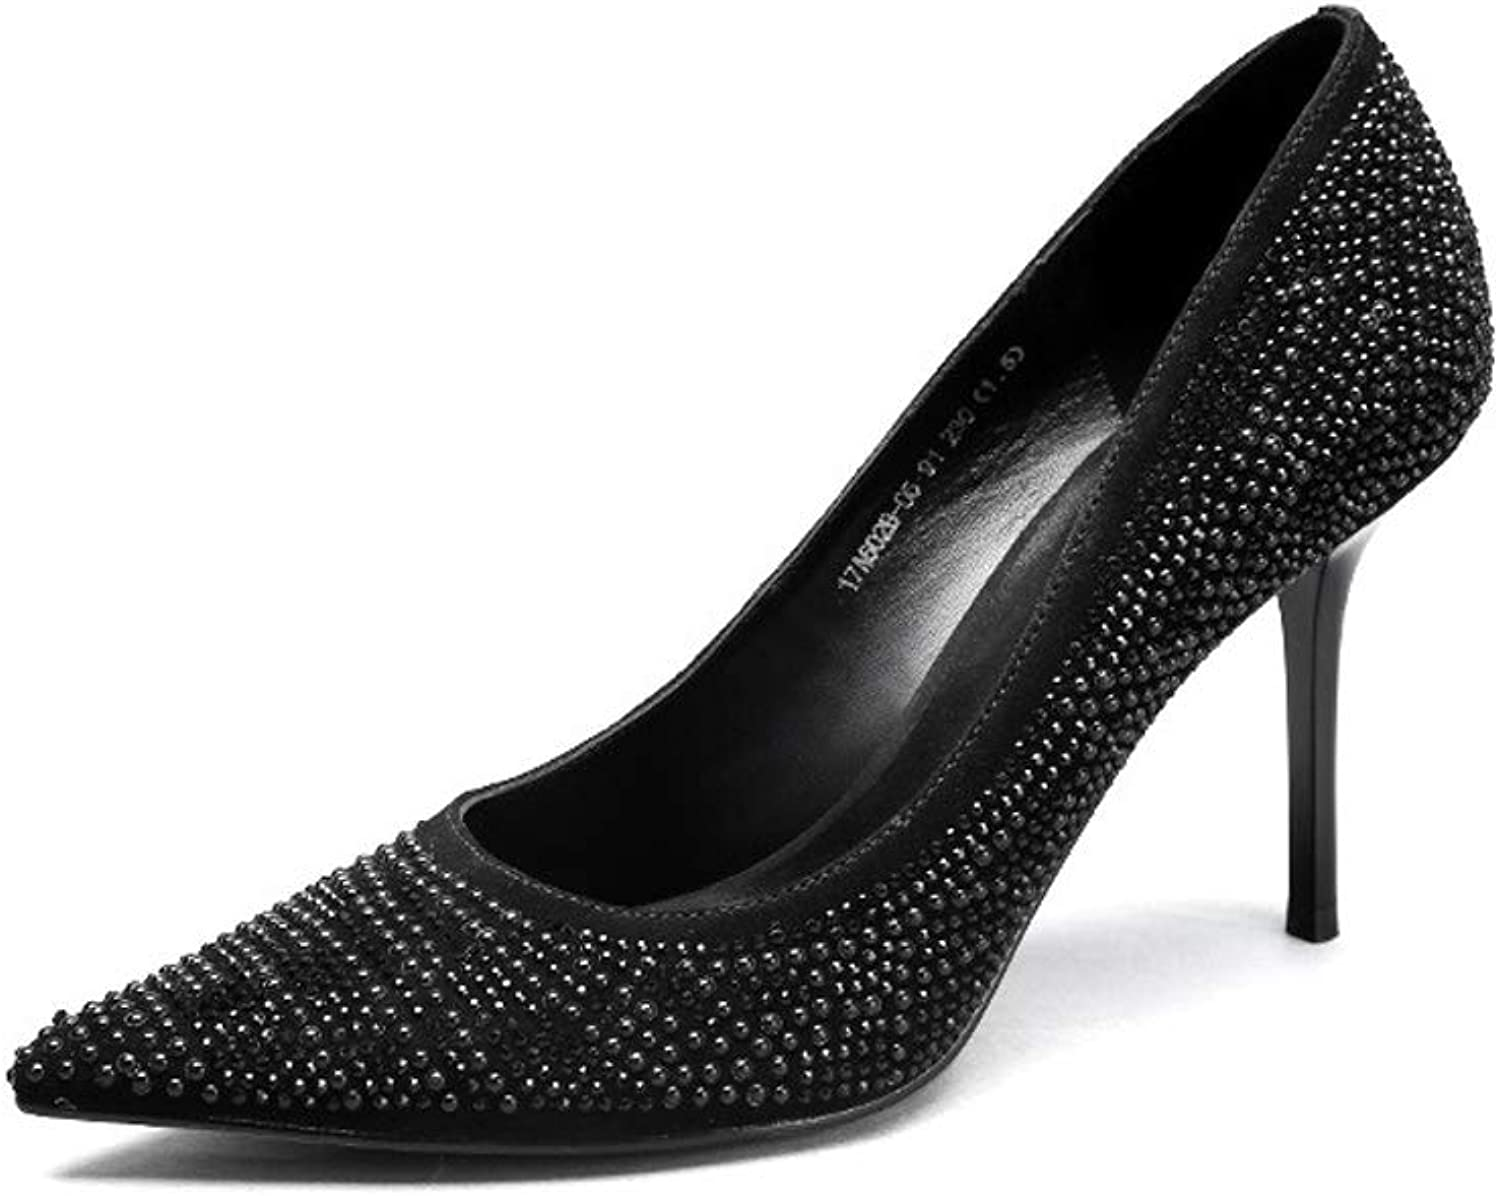 Pearl face Pointed Female high Heels, Stiletto Shallow Mouth Sexy Fashion Women's shoes